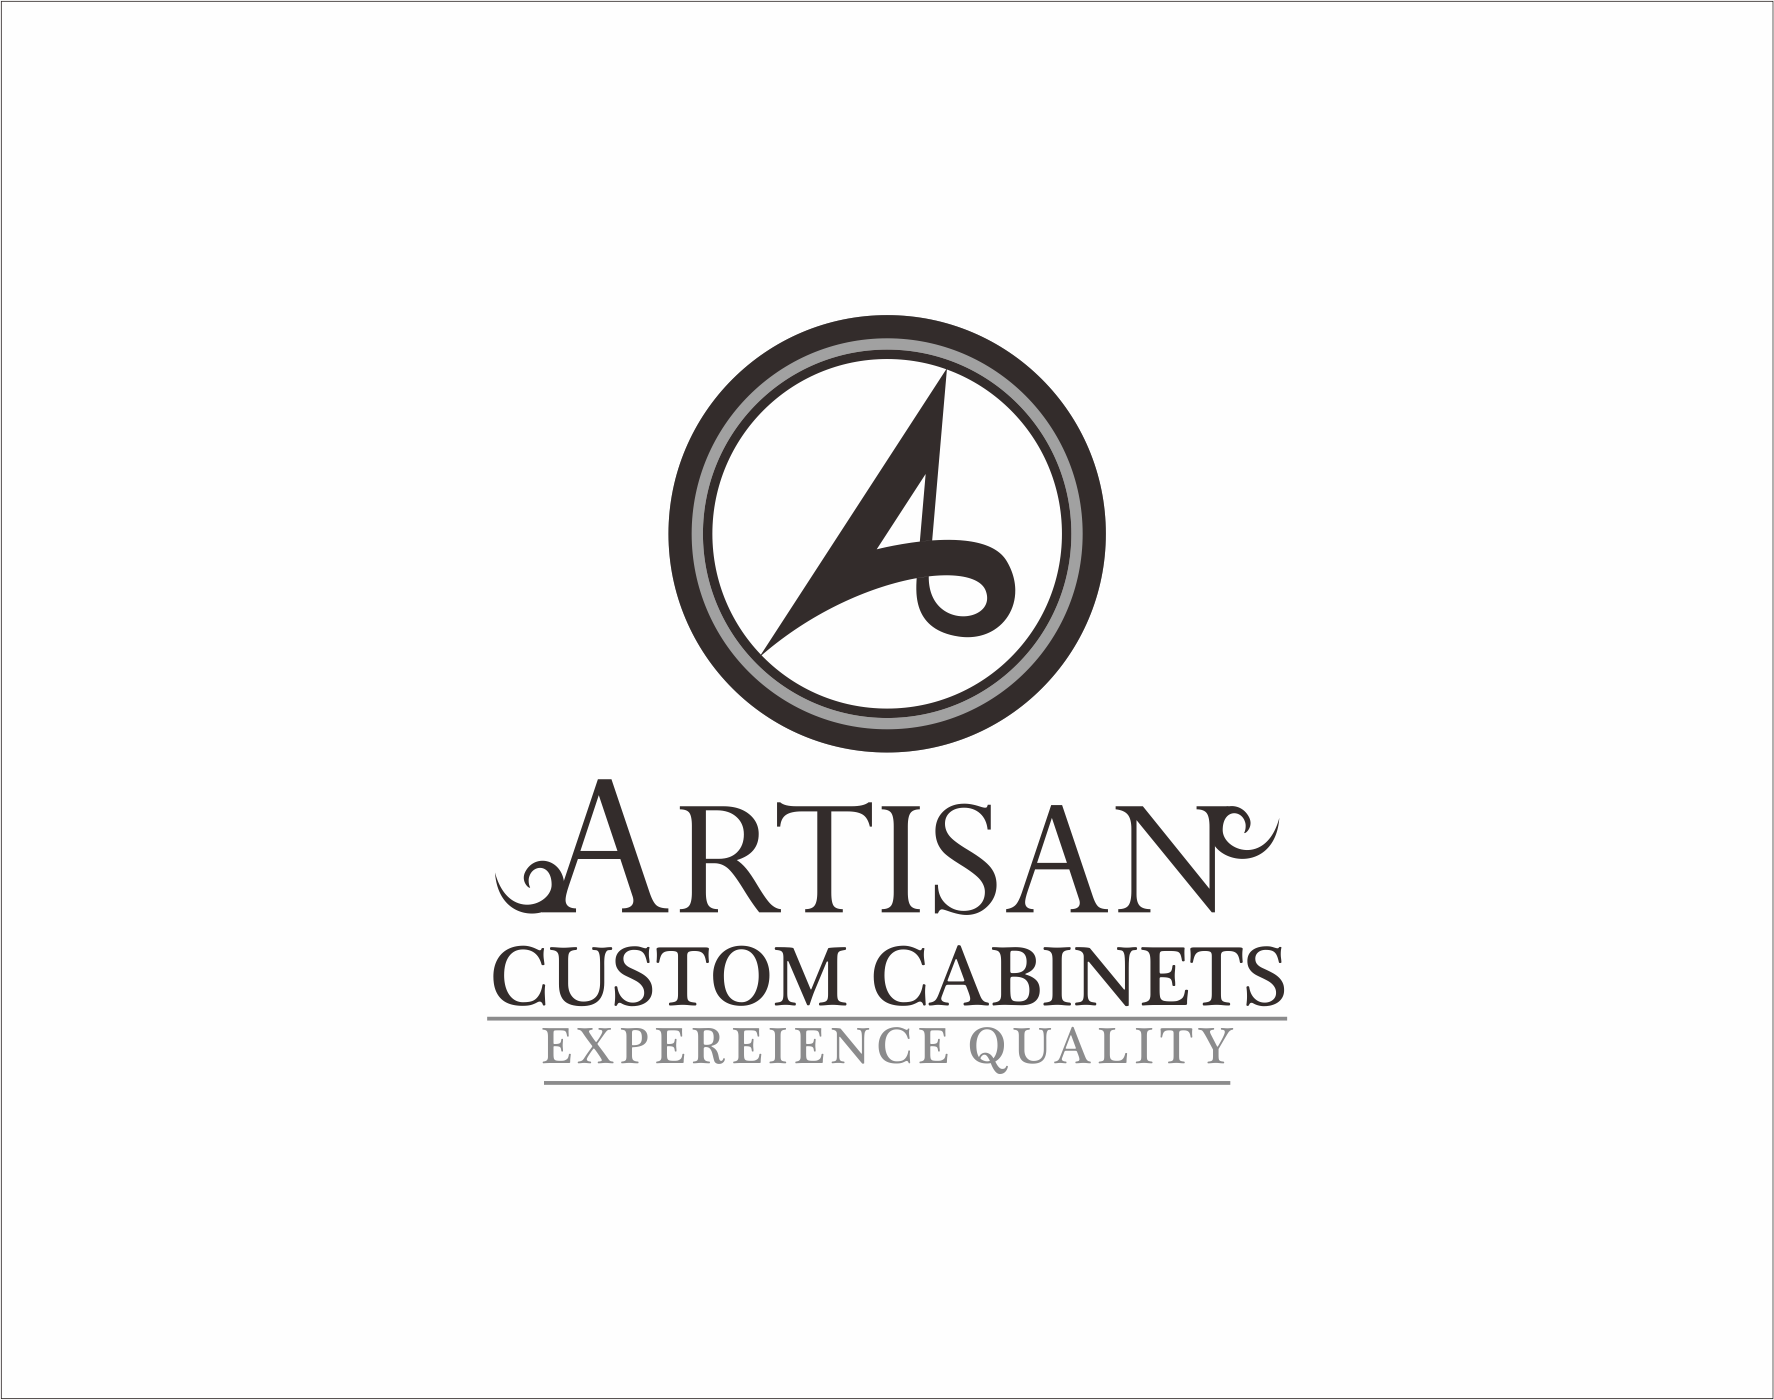 Logo Design by Armada Jamaluddin - Entry No. 154 in the Logo Design Contest Creative Logo Design for Artisan Custom Cabinets.